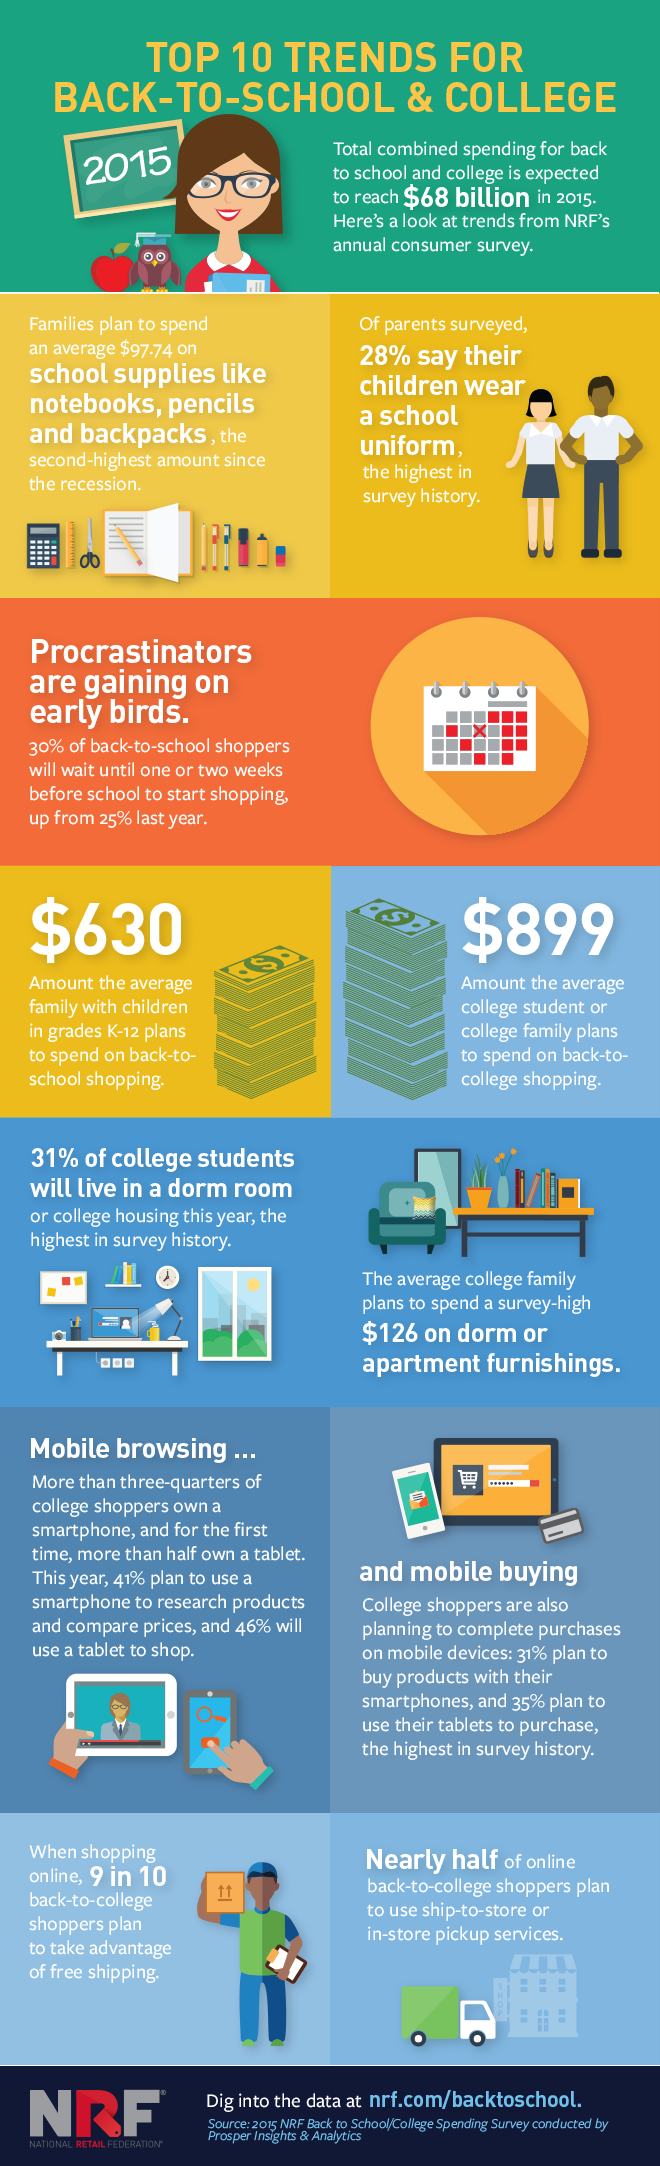 Top 10 trends for back-to-school and college 2015